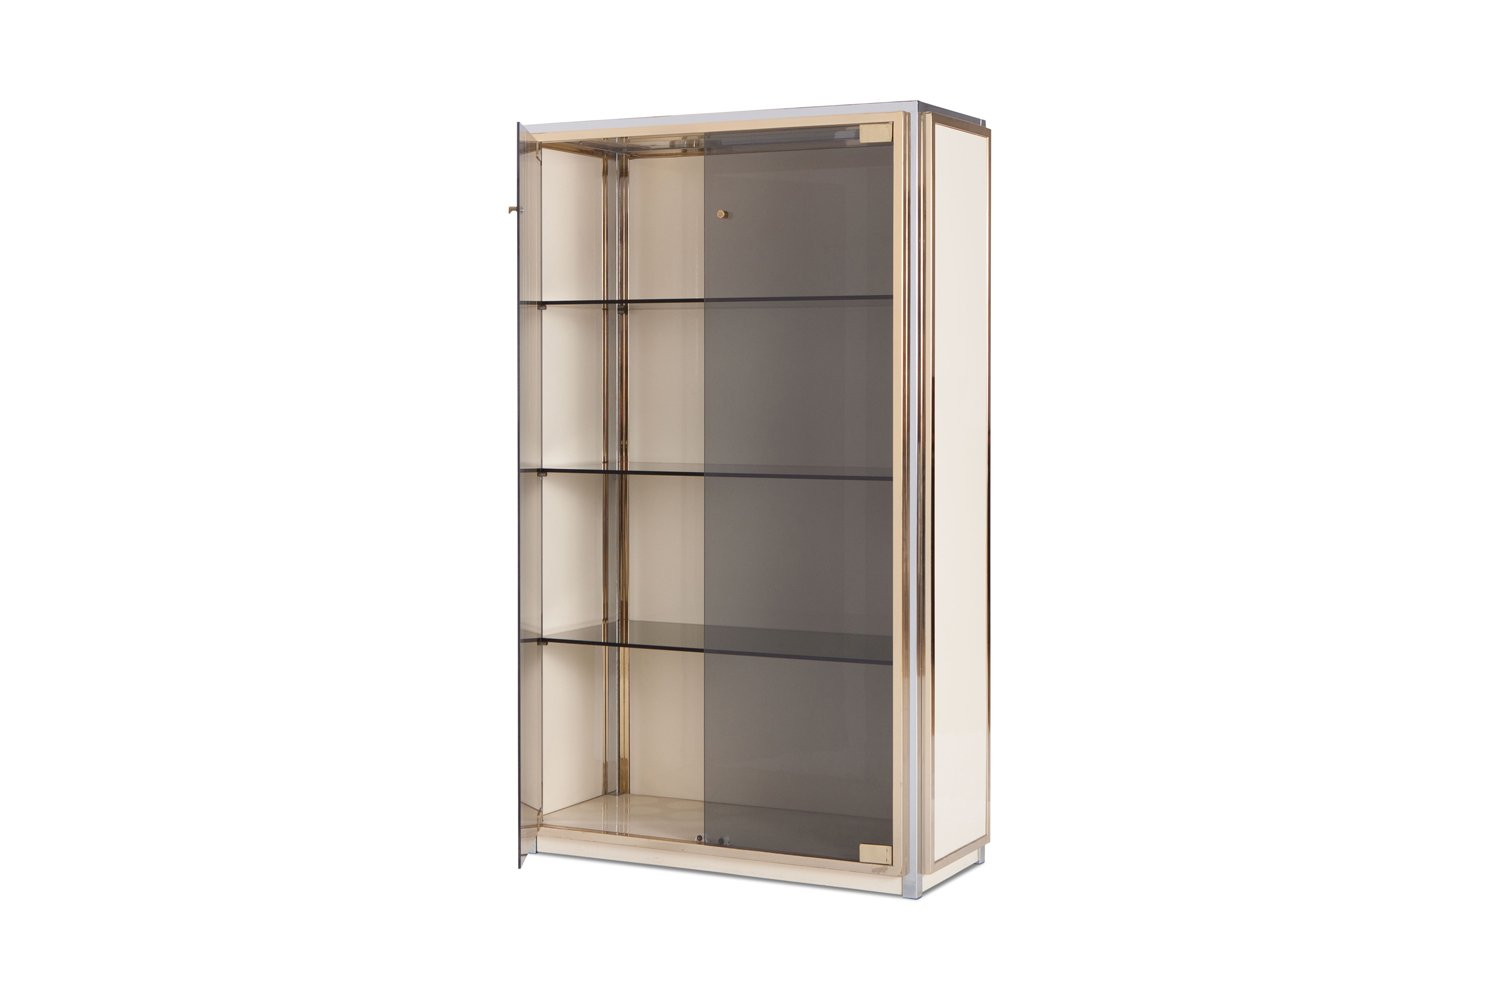 Showcase With Glass Doors By Renato Zevi 1970s For Sale At Pamono